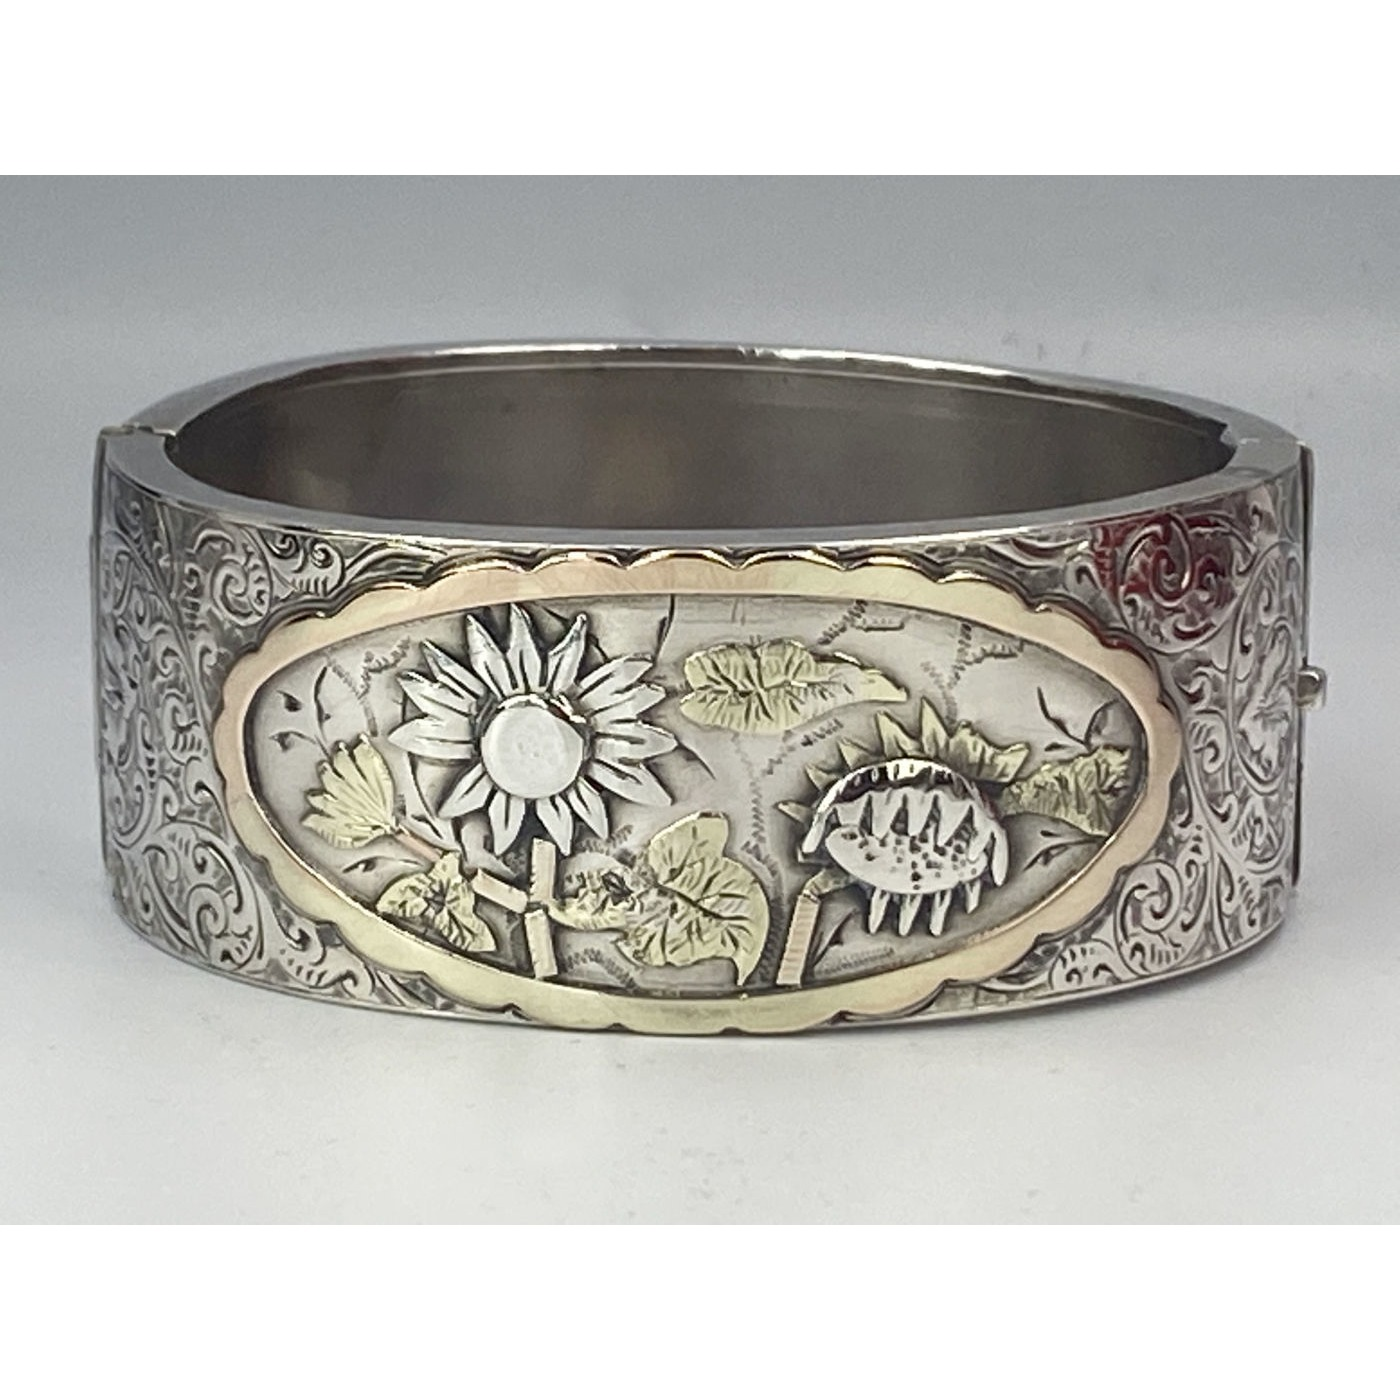 Raised, Bold Sunflower-type Flowers, Rose and Yellow Gold Decoration, English Silver Bangle